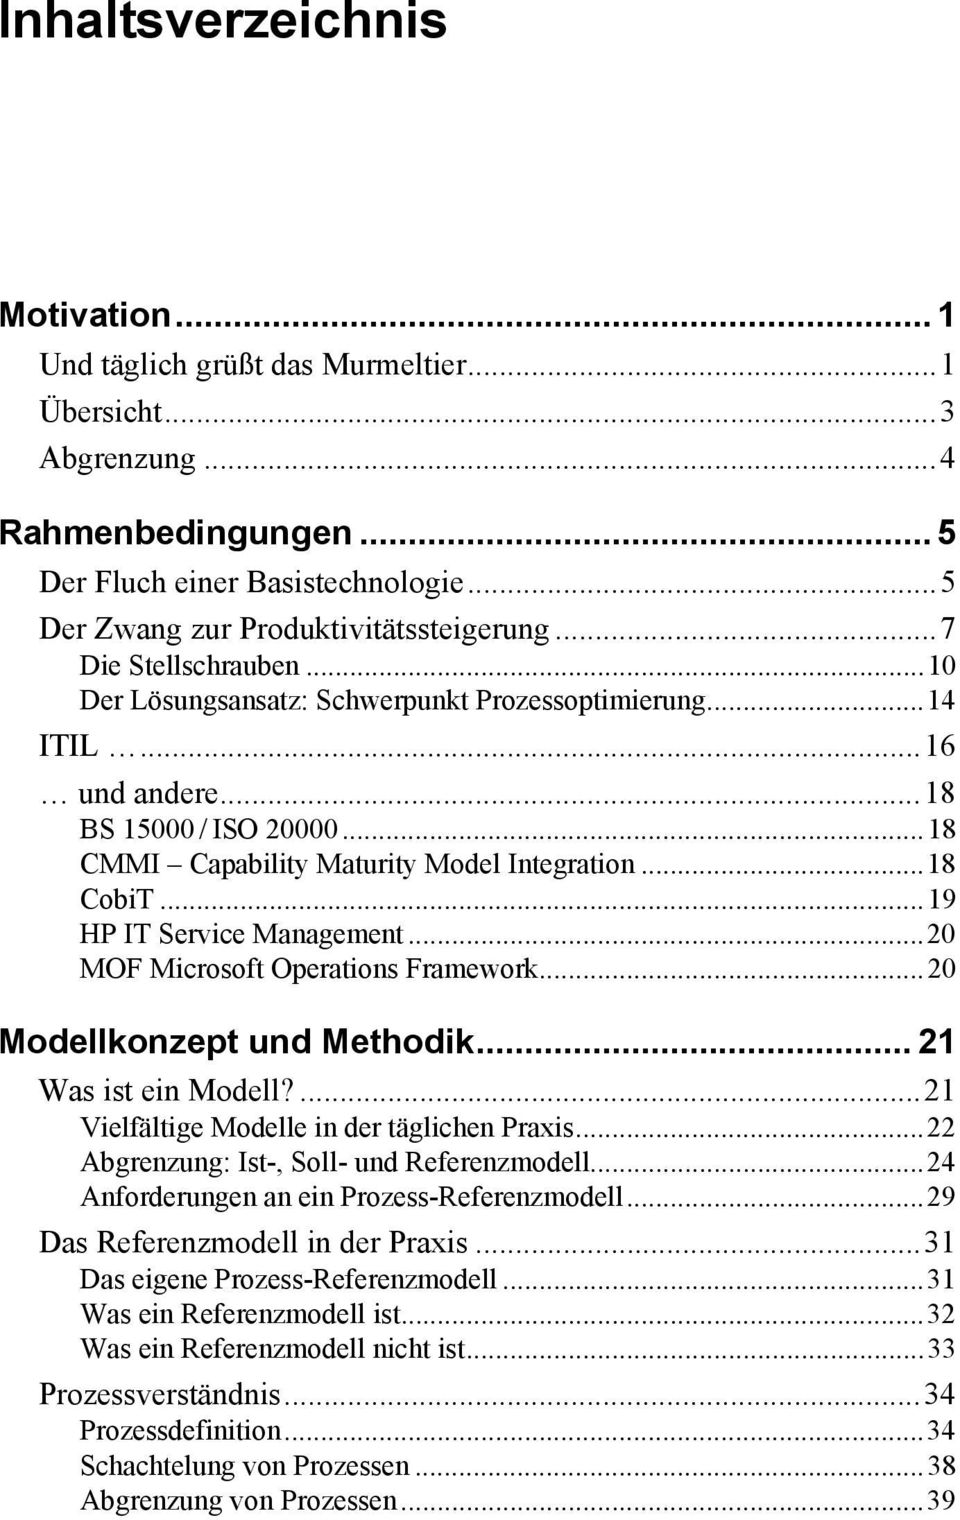 ..19 HP IT Service Management...20 MOF Microsoft Operations Framework...20 Modellkonzept und Methodik... 21 Was ist ein Modell?...21 Vielfältige Modelle in der täglichen Praxis.